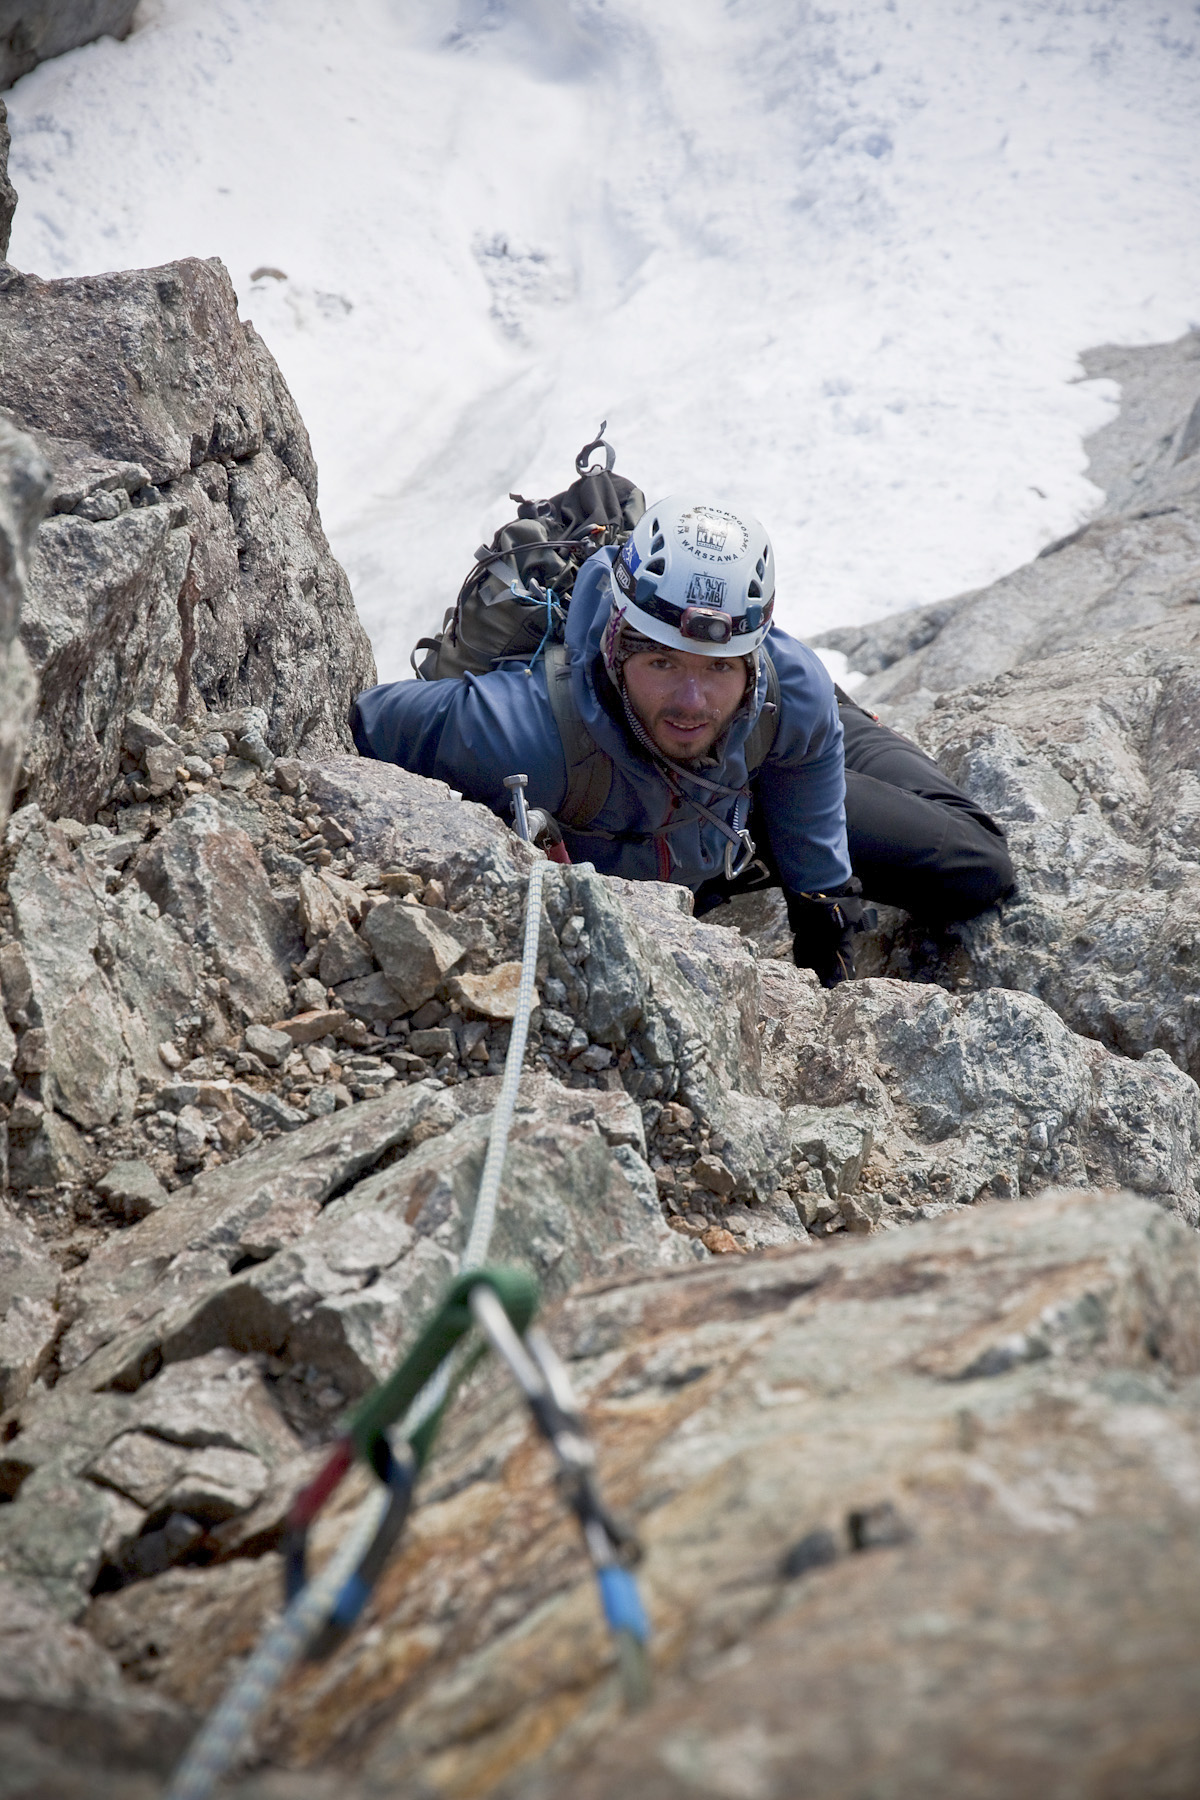 Tomek Klimczak following a rock section during the ascent of Ursa Major to the summit ridge of Peak 5,625m.